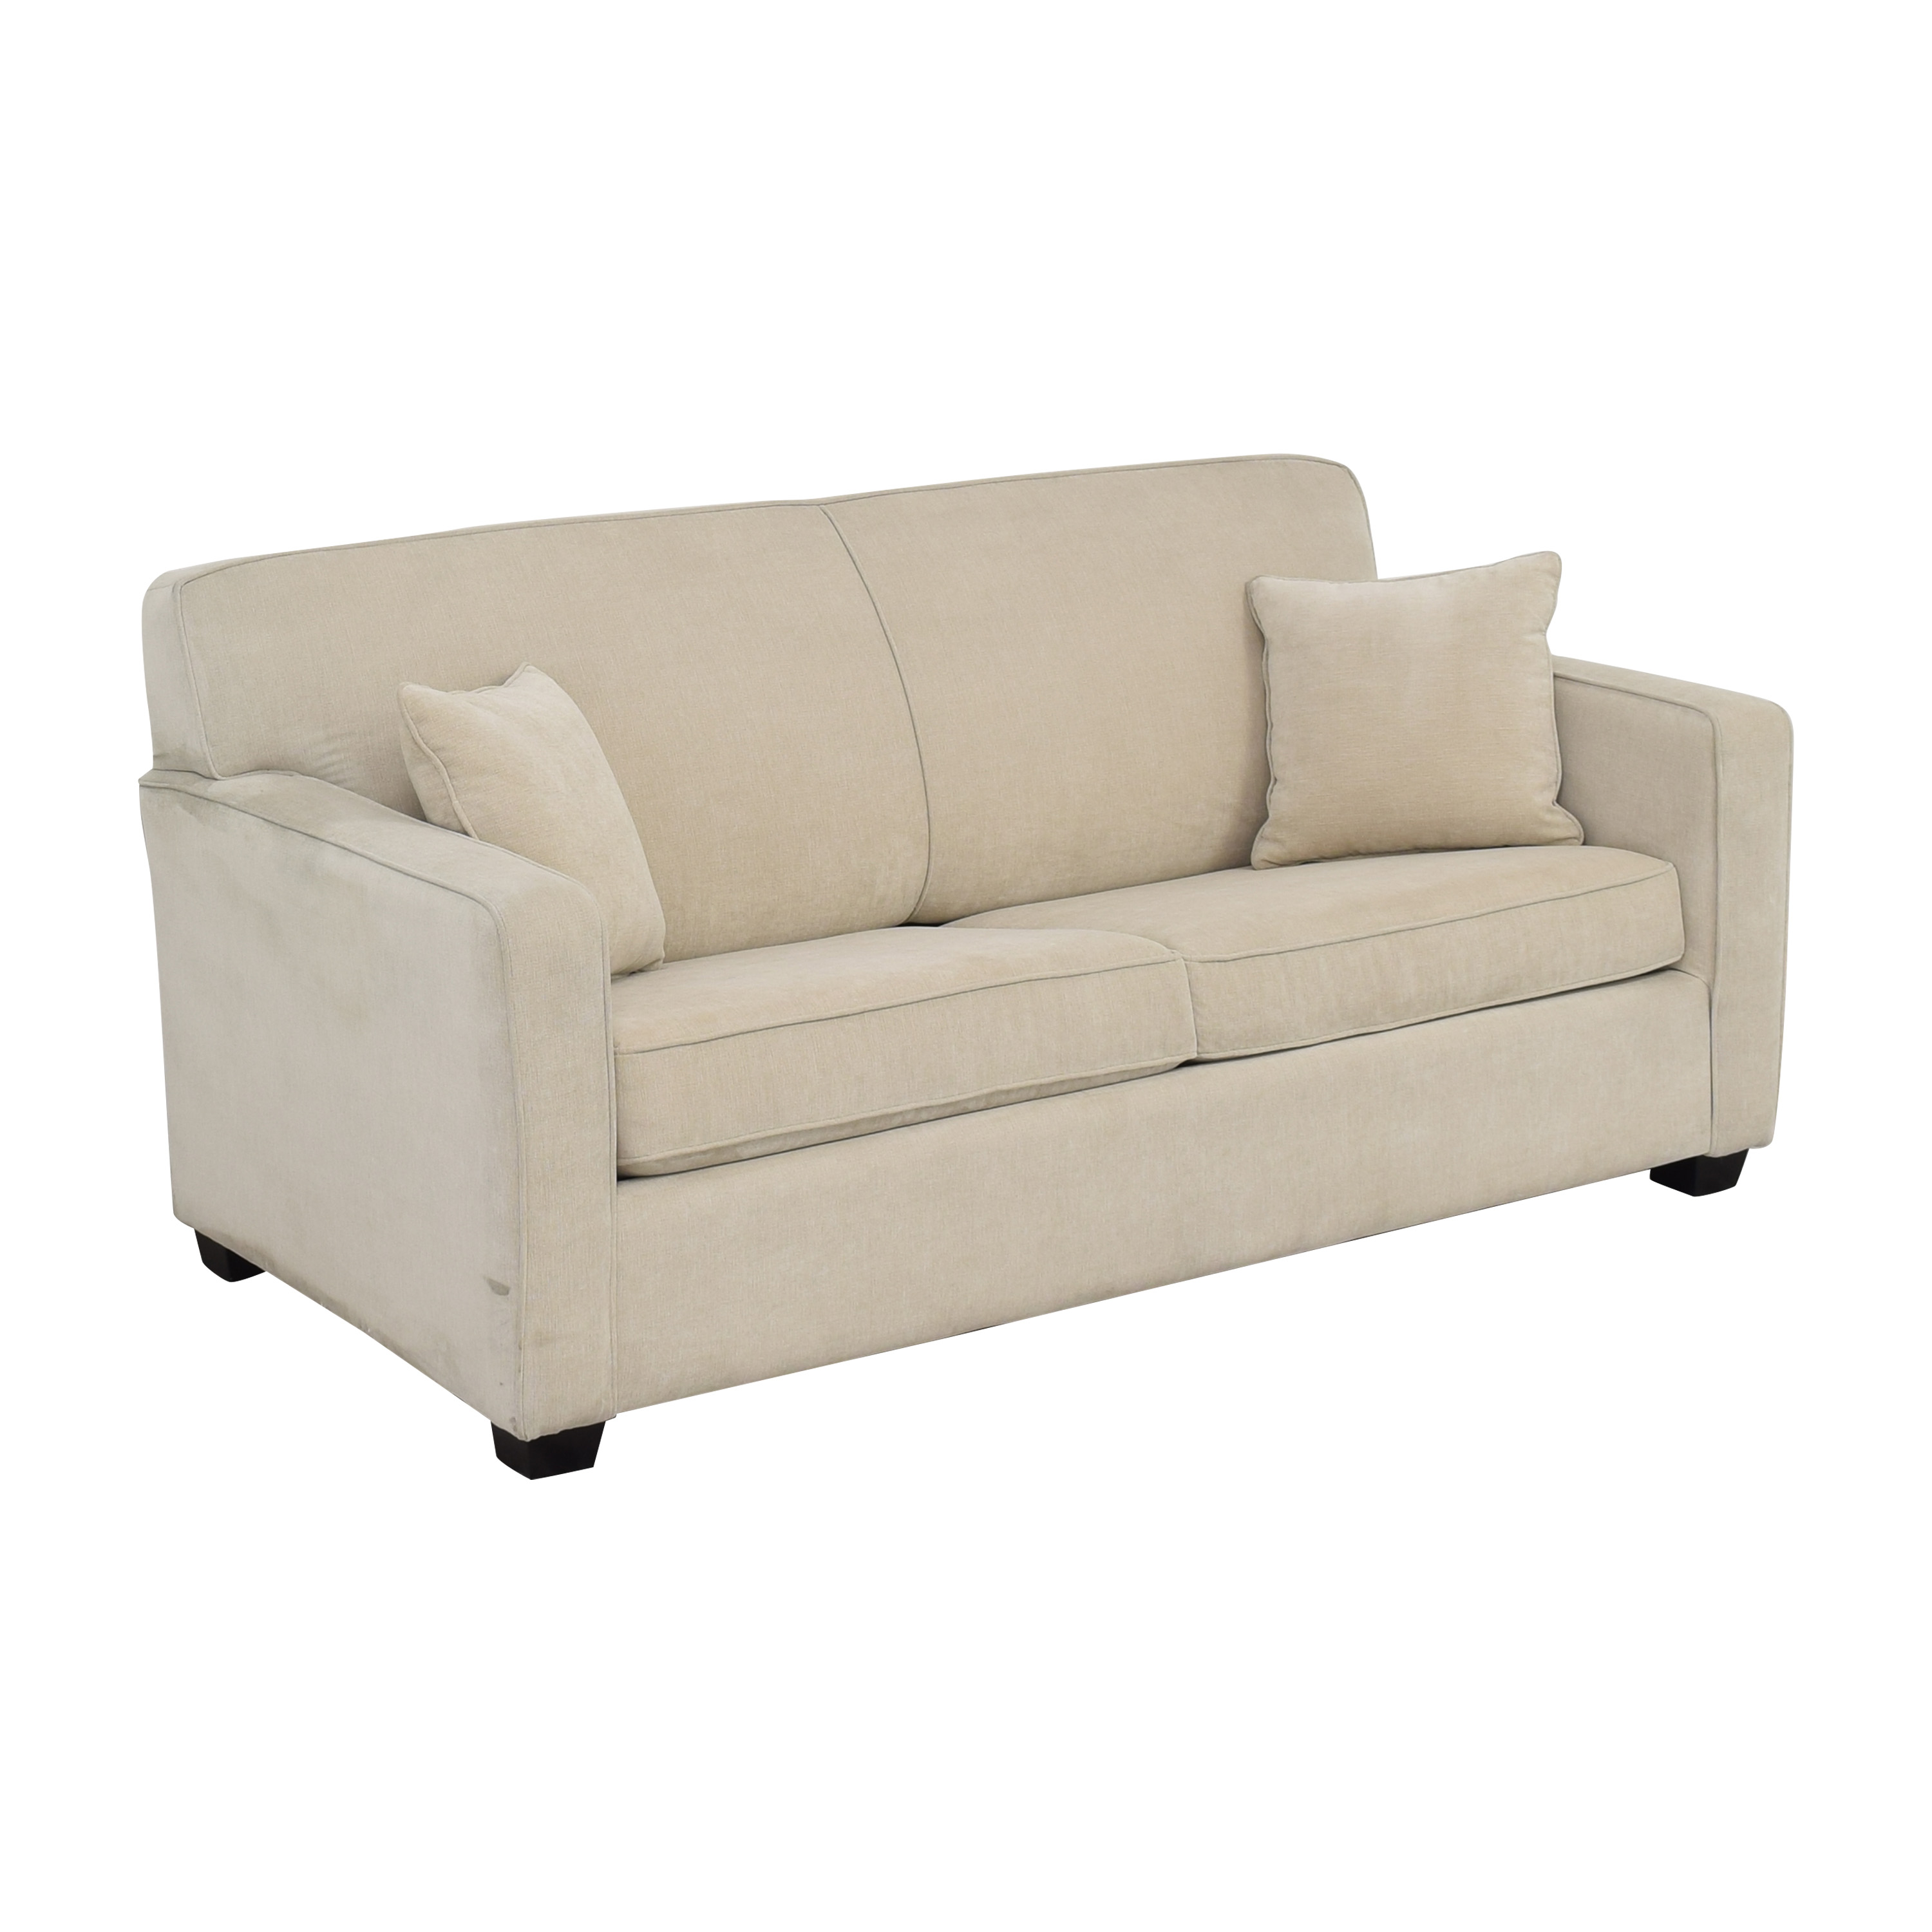 Two Cushion Sleeper Sofa with Pillows second hand